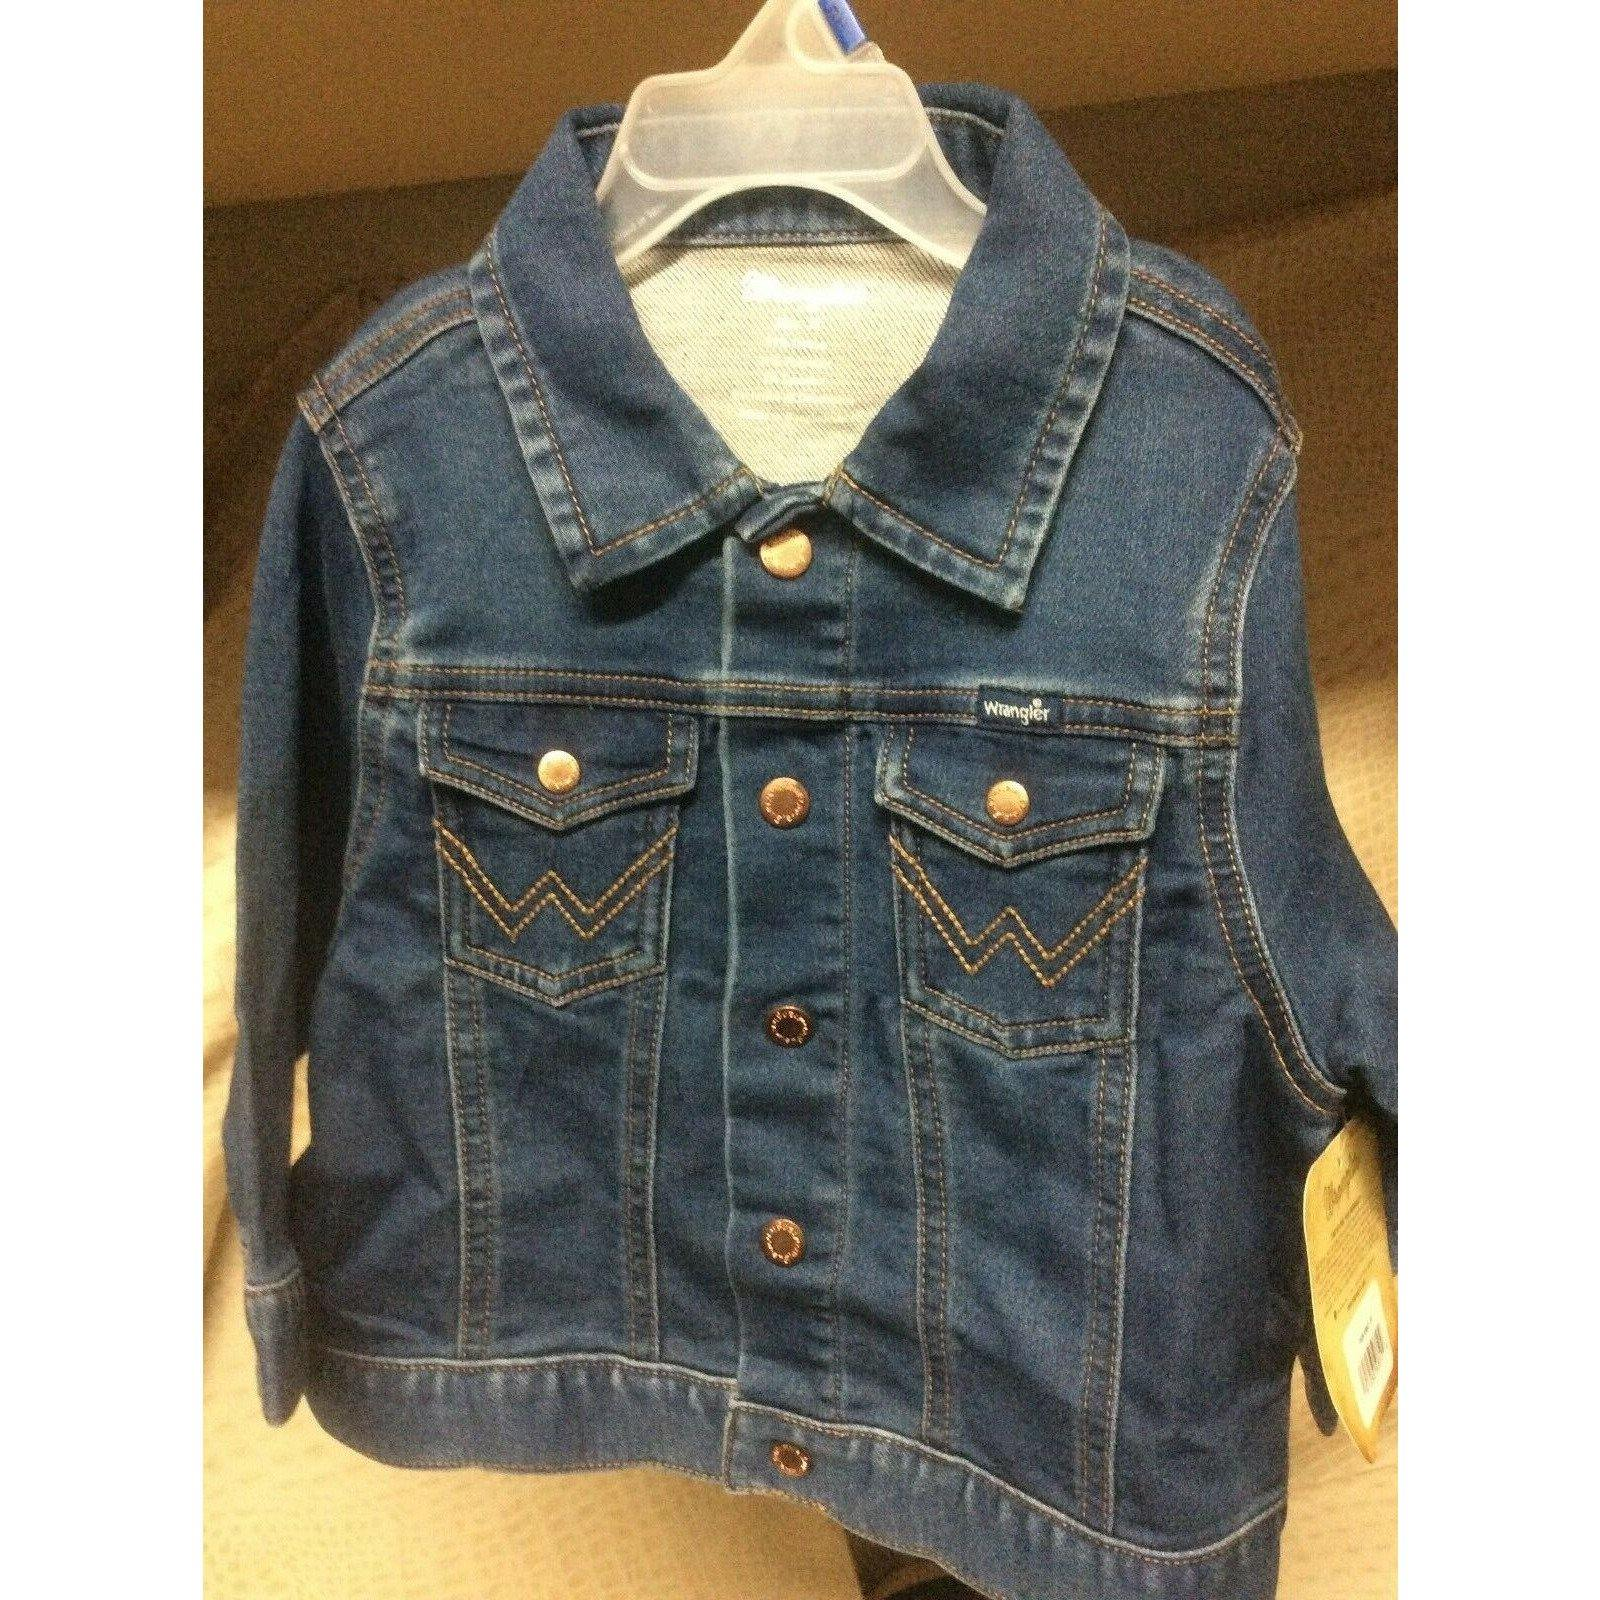 New Toddler Kids Wrangler Blue Denim Western Cowboy Trucker Stretch Jacket - CWesternwear